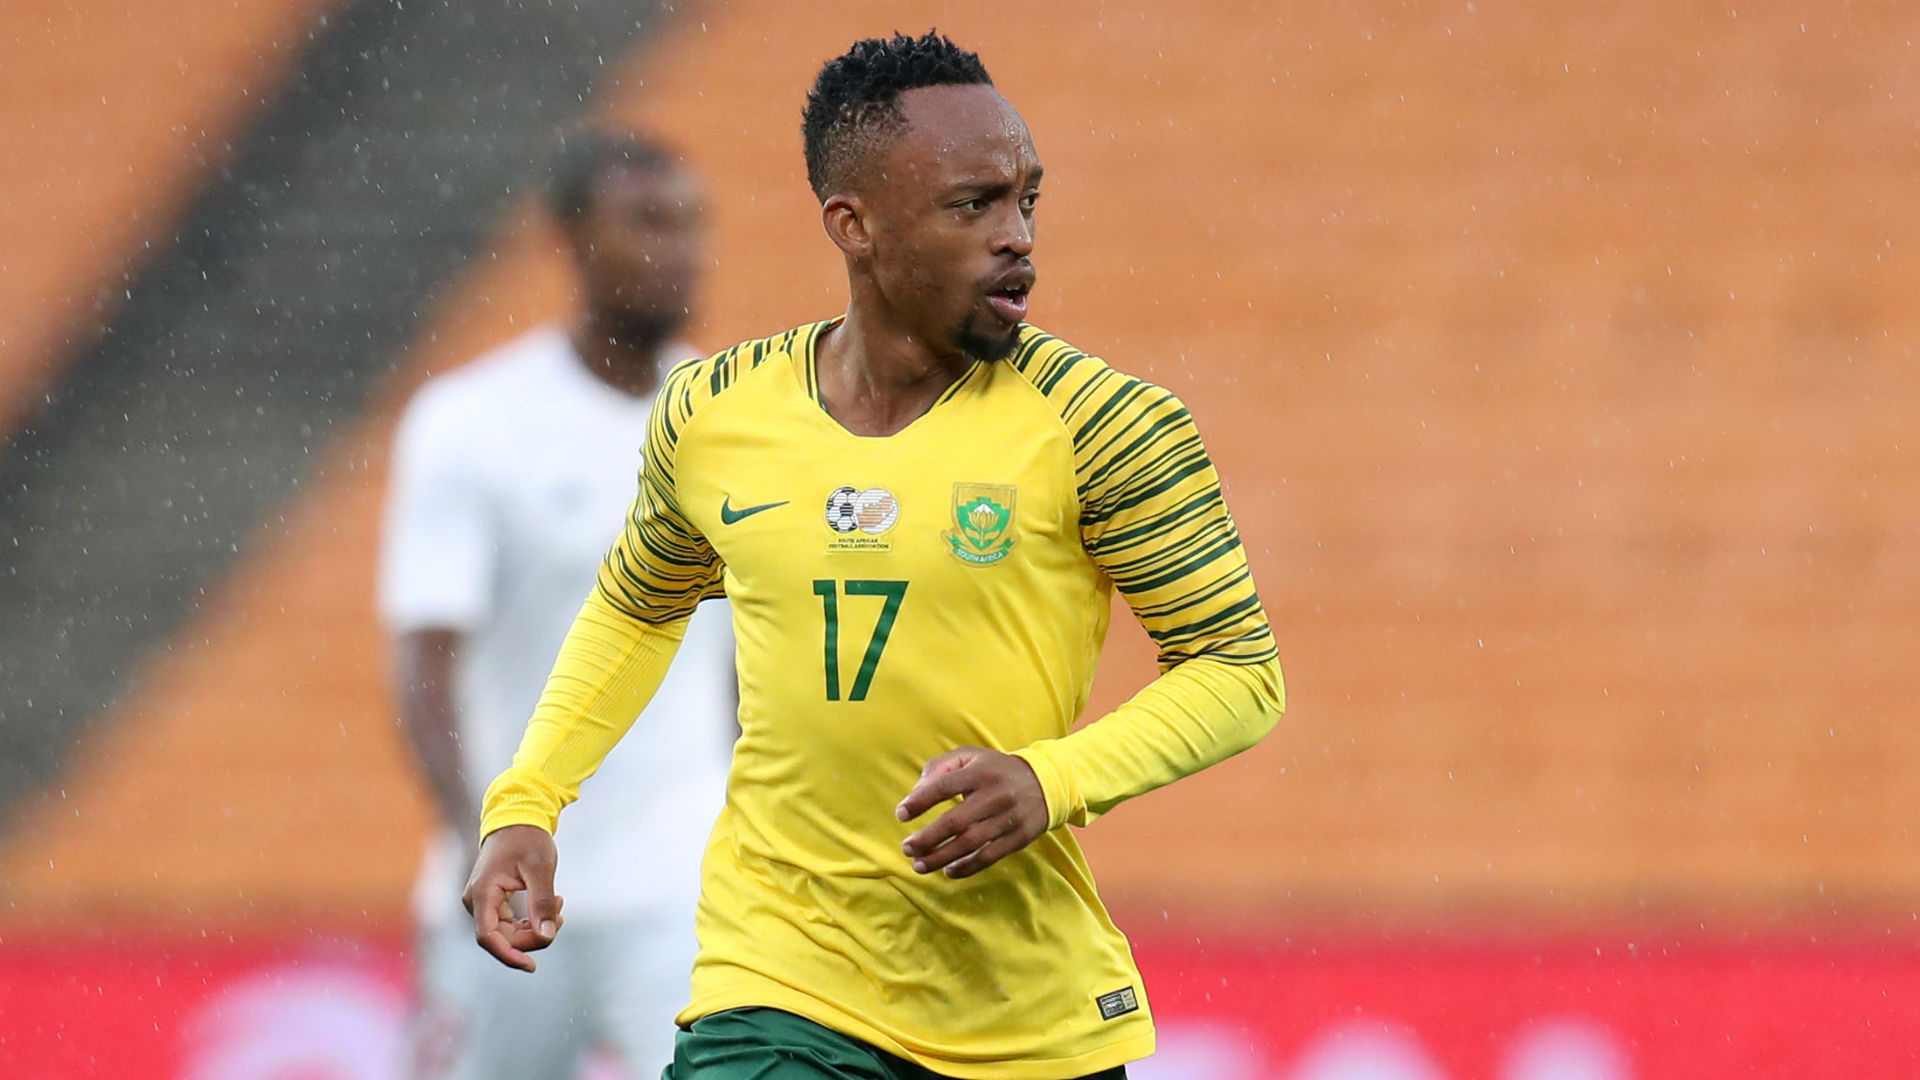 Madagascar replaces Zambia as Bafana Bafana's new opponents